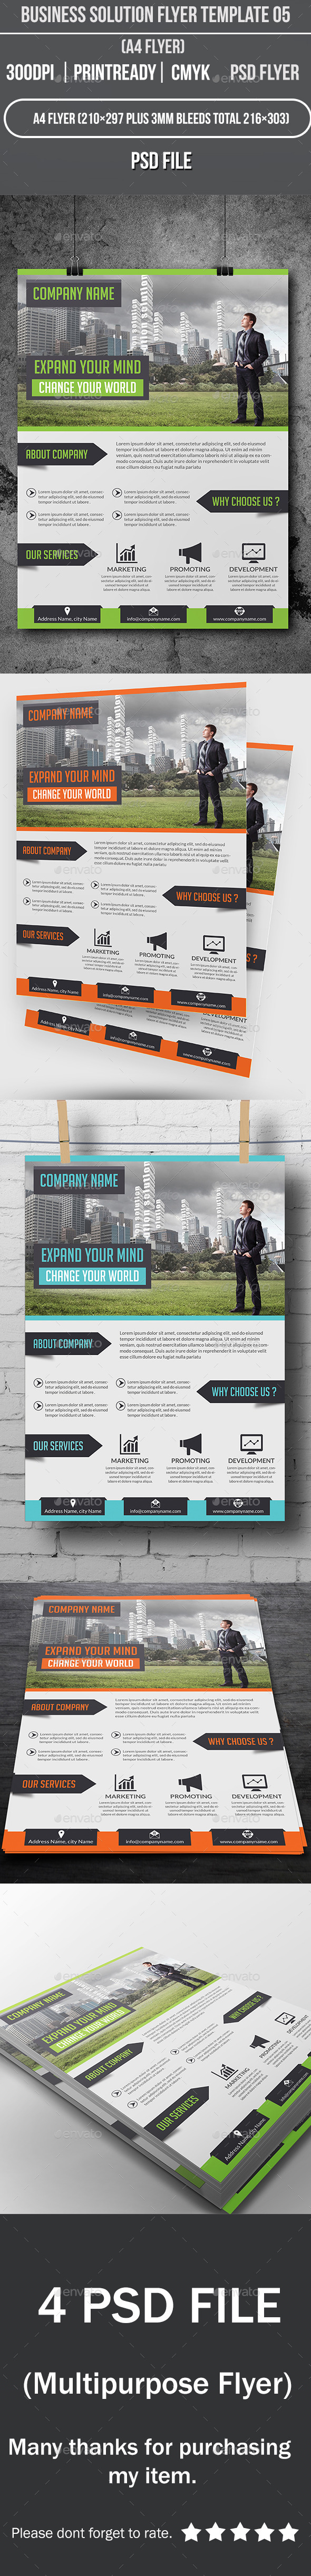 Business Solution Flyer Template 05 - Corporate Flyers